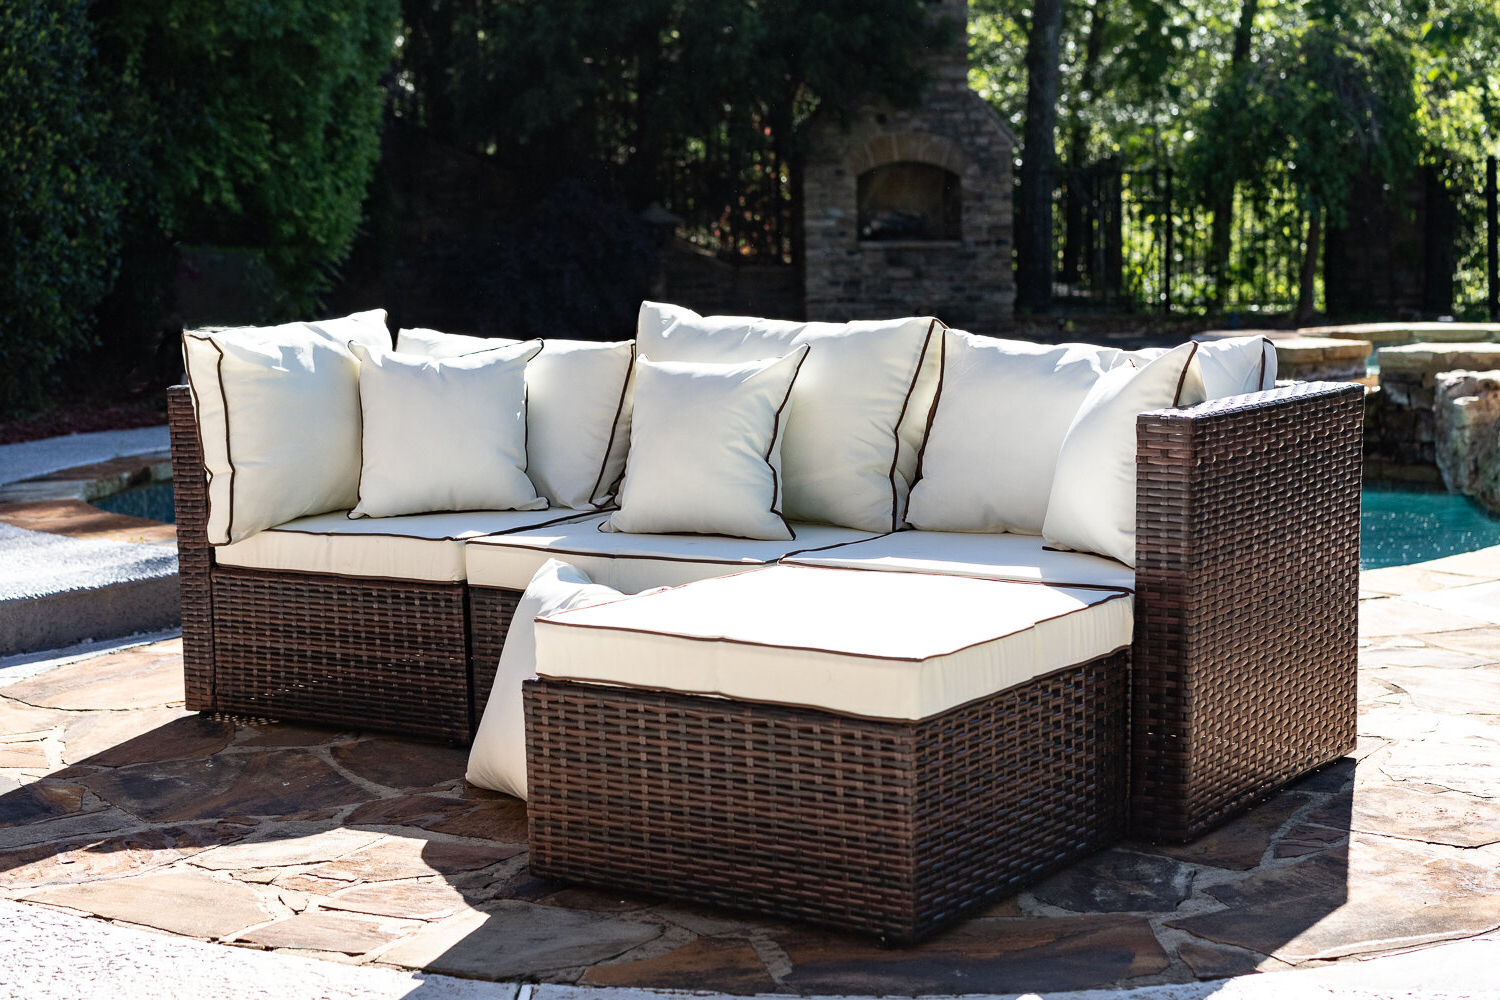 Lawson Patio Sofas With Cushions Throughout Newest Burruss Patio Sectional With Cushions (View 19 of 25)